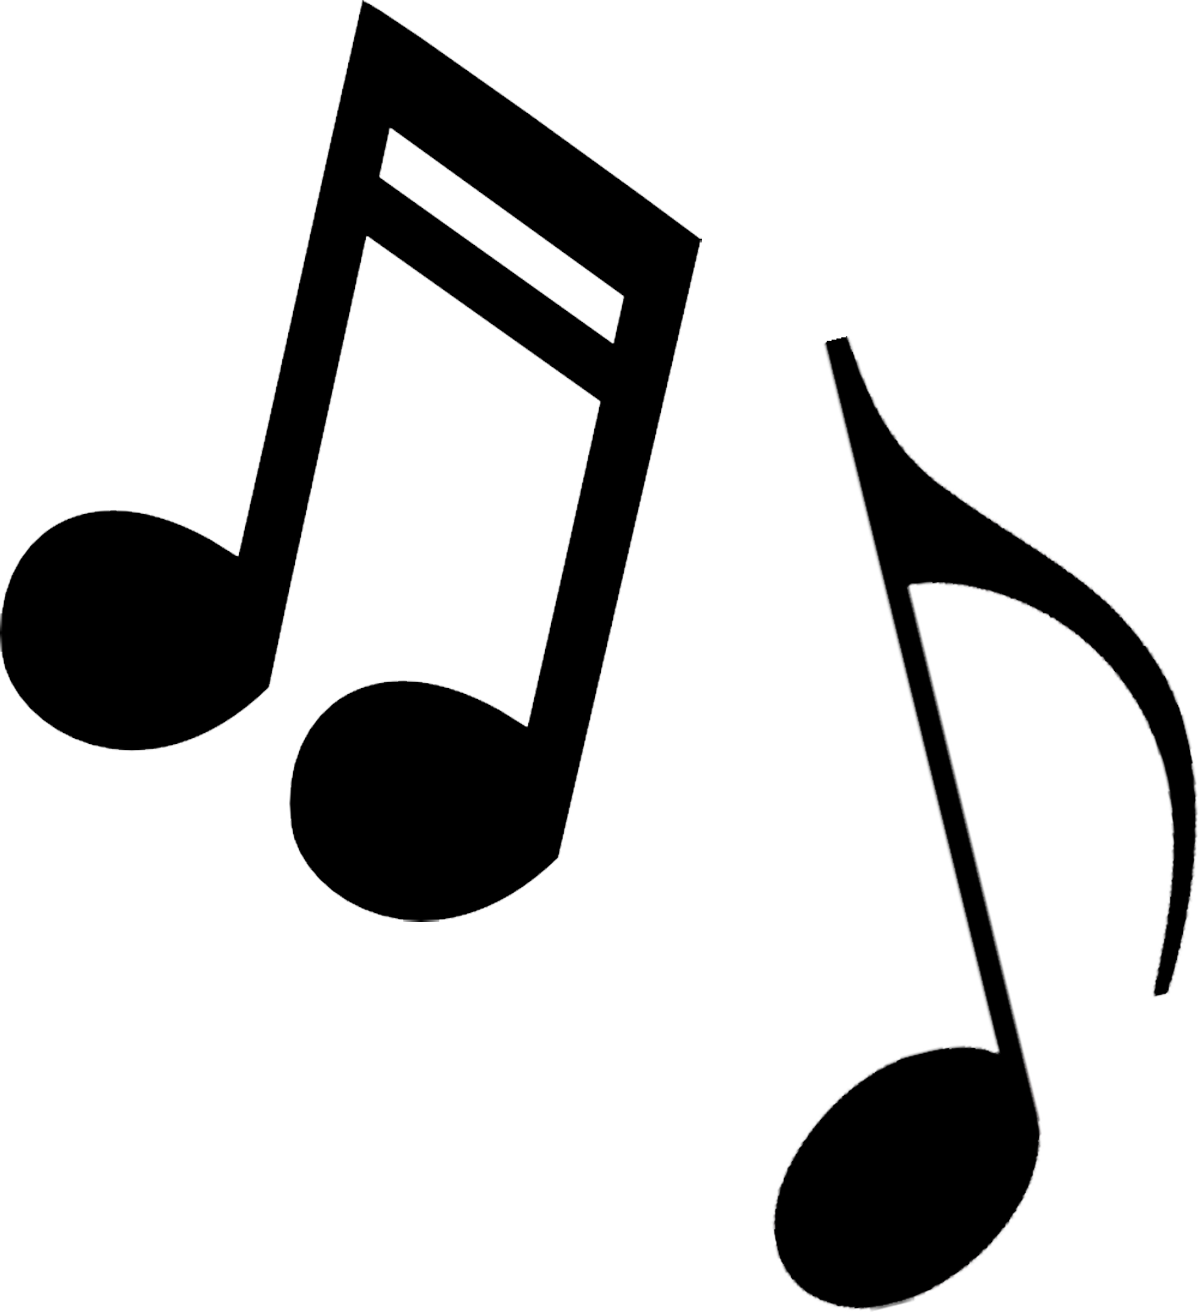 Music Notes Musical Clip Art Free Music Note Clipart Image 1 3 Music Notes Art Music Notes Music Notes Background